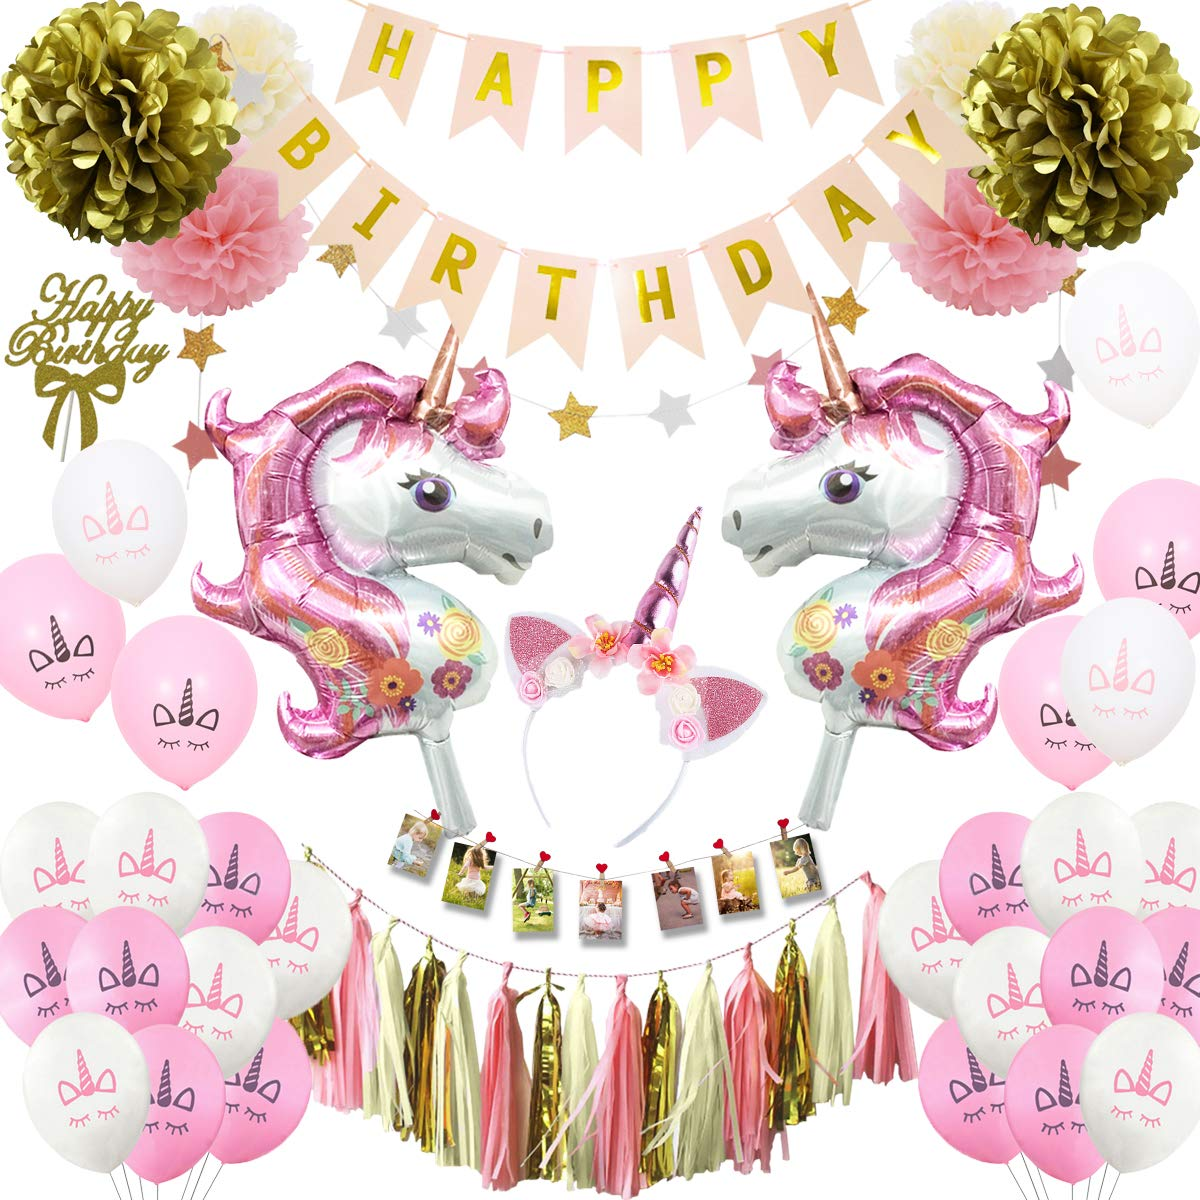 Musebits Pink Gold Unicorn Birthday Party Decorations Essential All In One Including Cake Topper Photo Clips